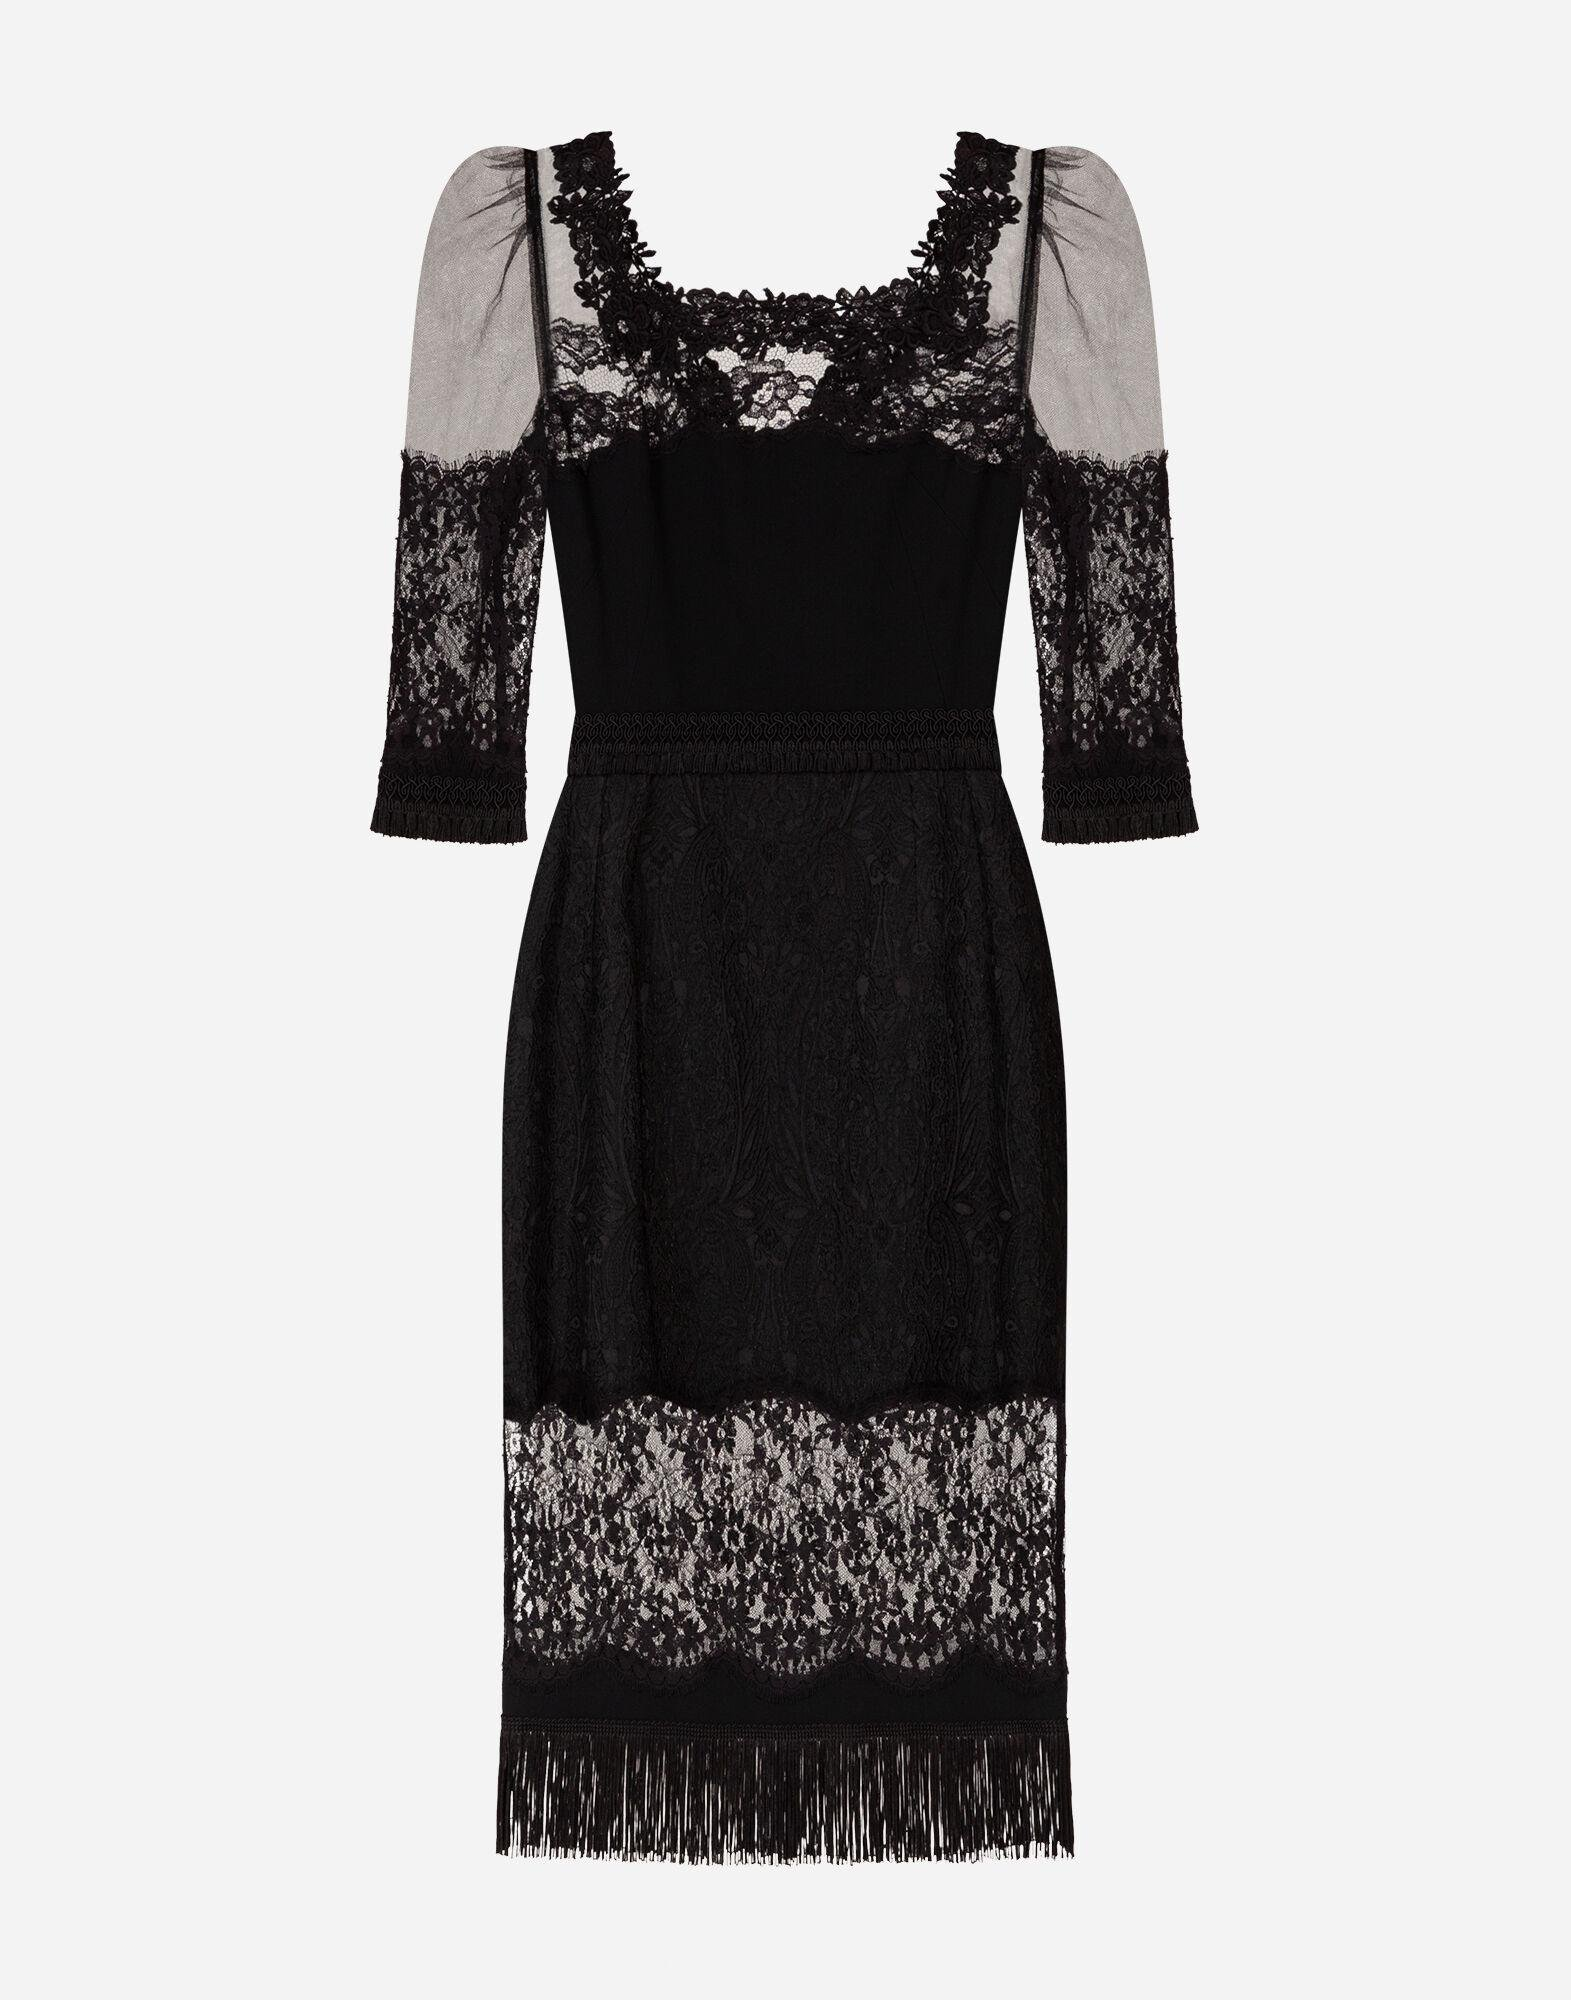 Cady and brocade midi dress with lace inserts 5